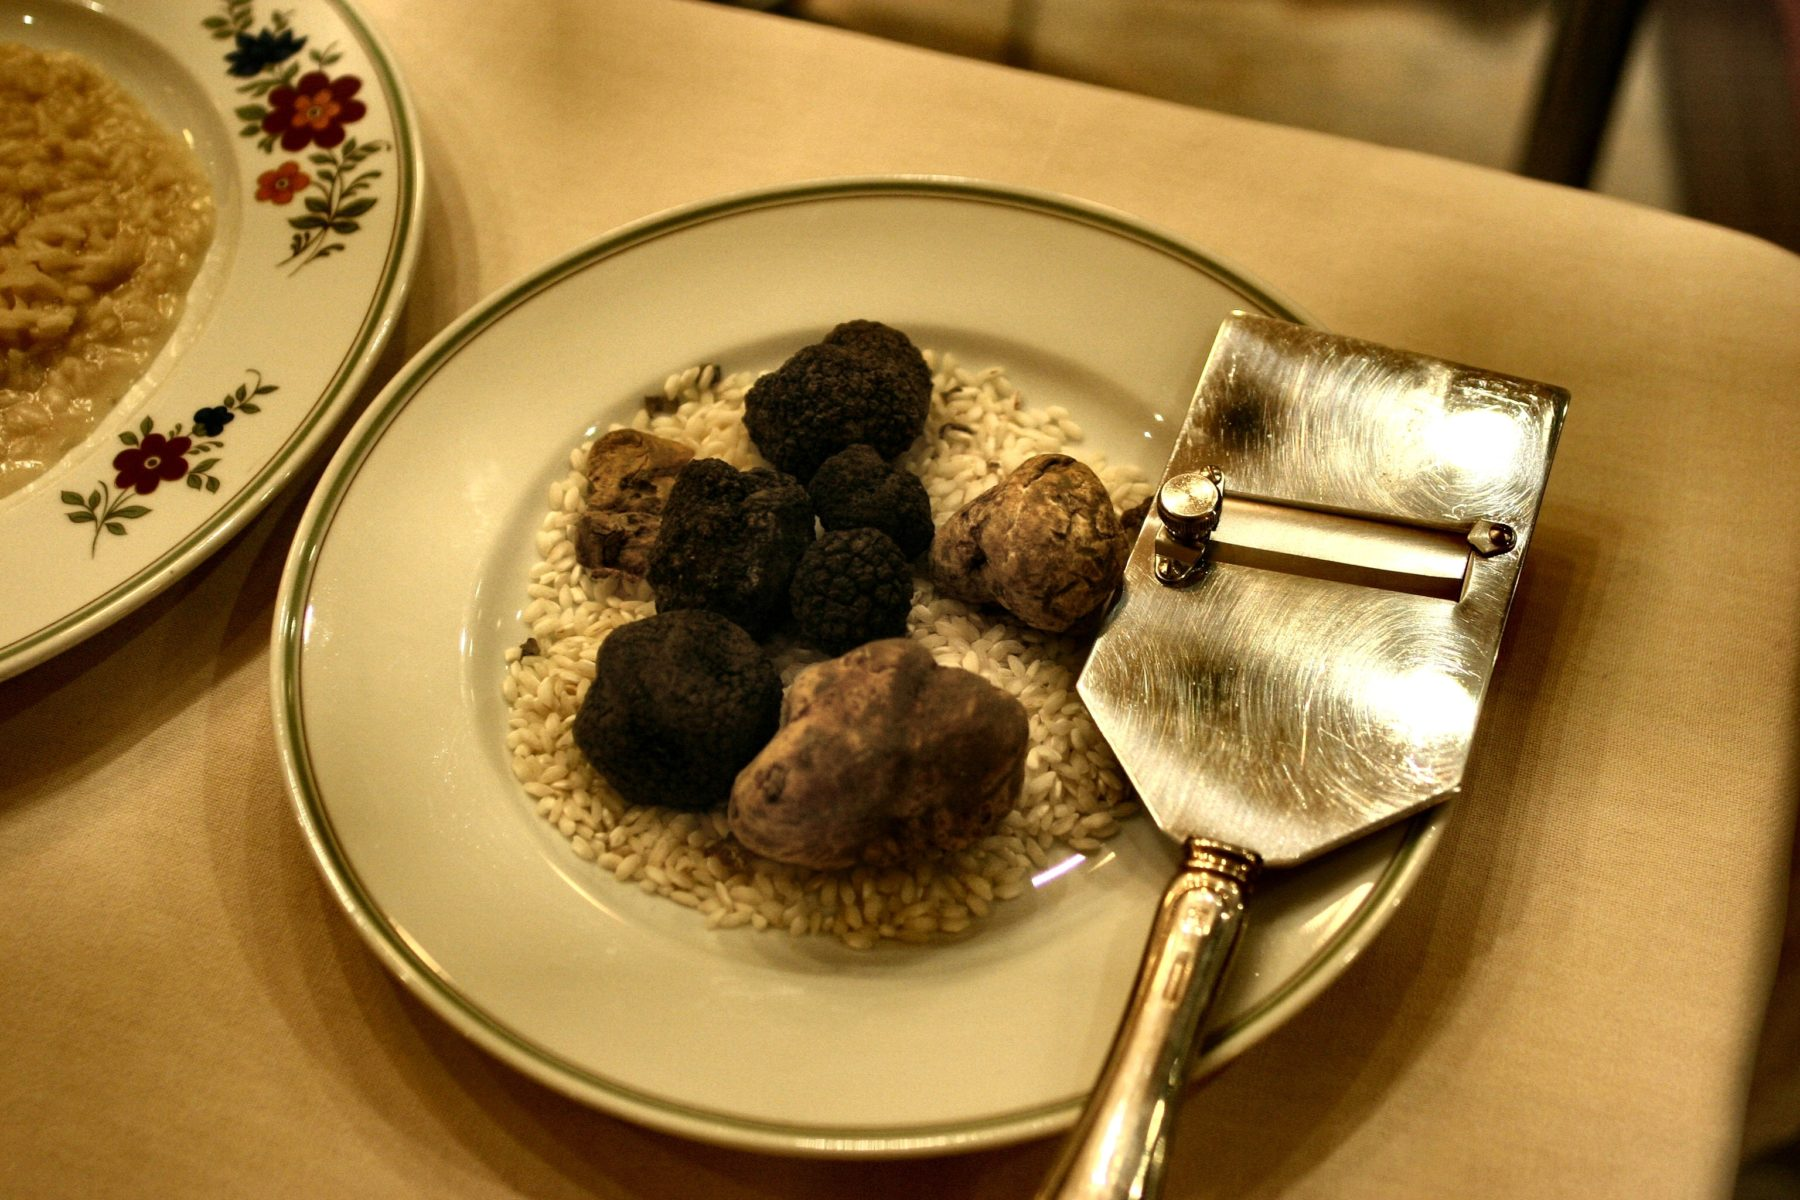 Truffles on a plate next to a metal truffle slicer